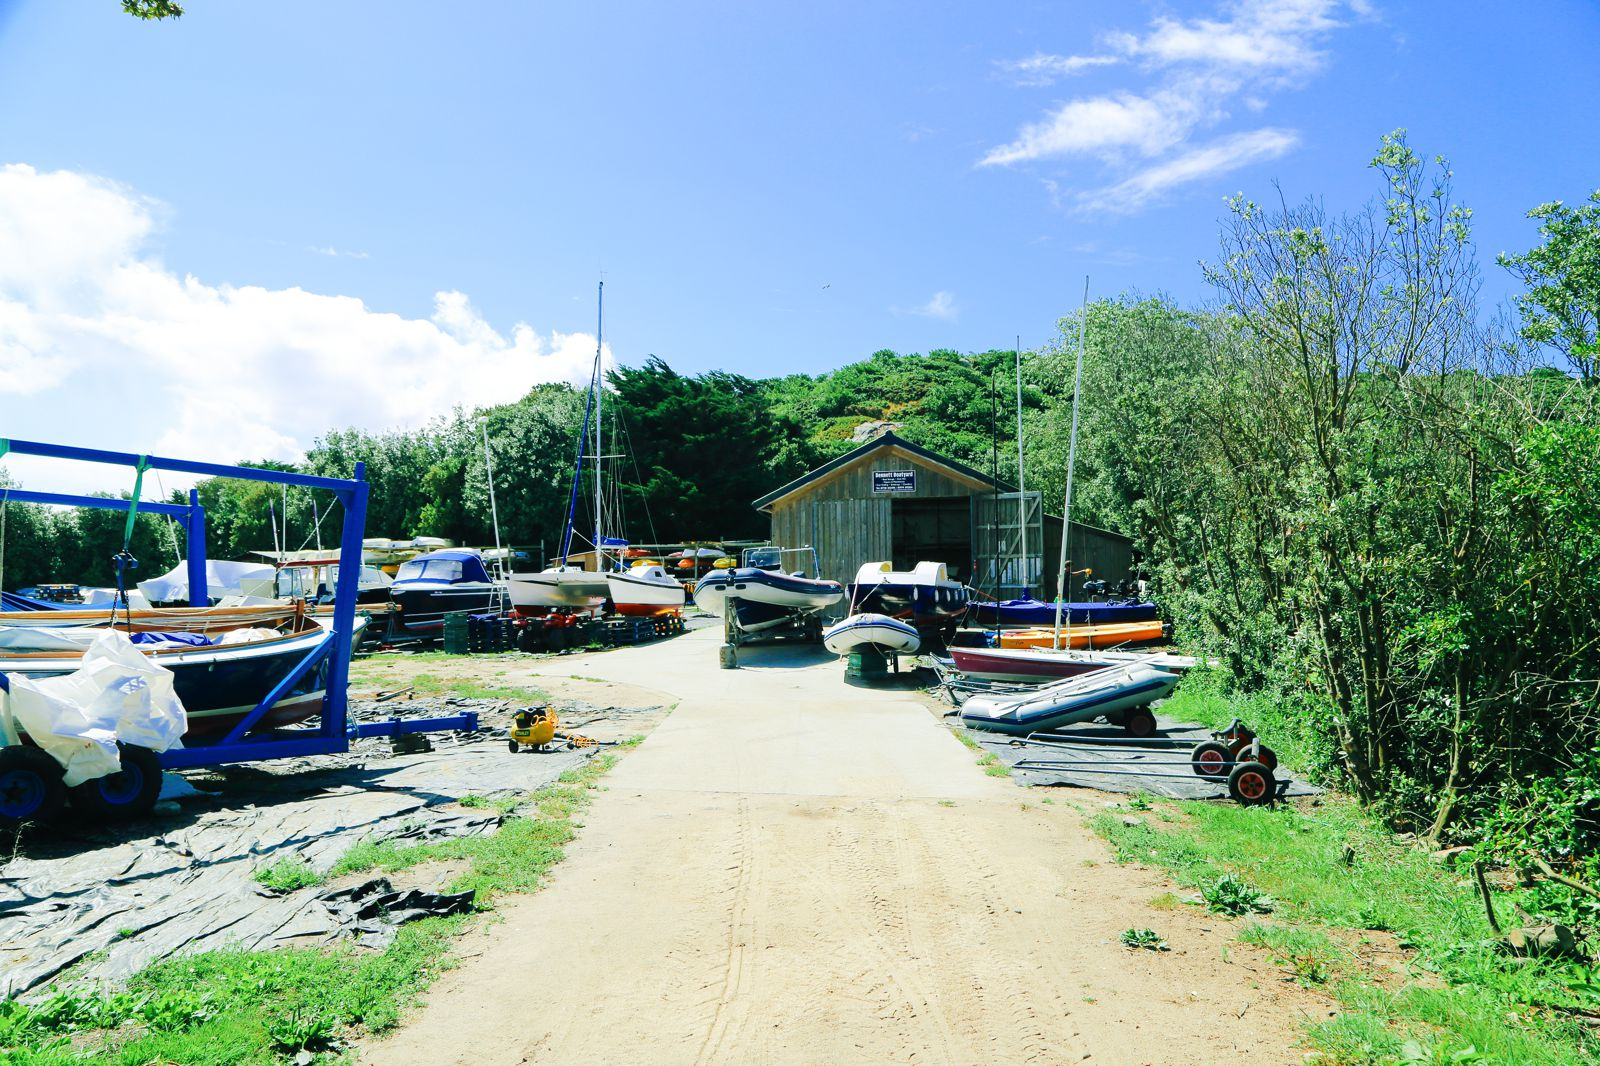 Kayaking in Bryher, Honesty Boxes and Tropical Island Hues... In Bryher Island, Isles of Scilly, UK (17)